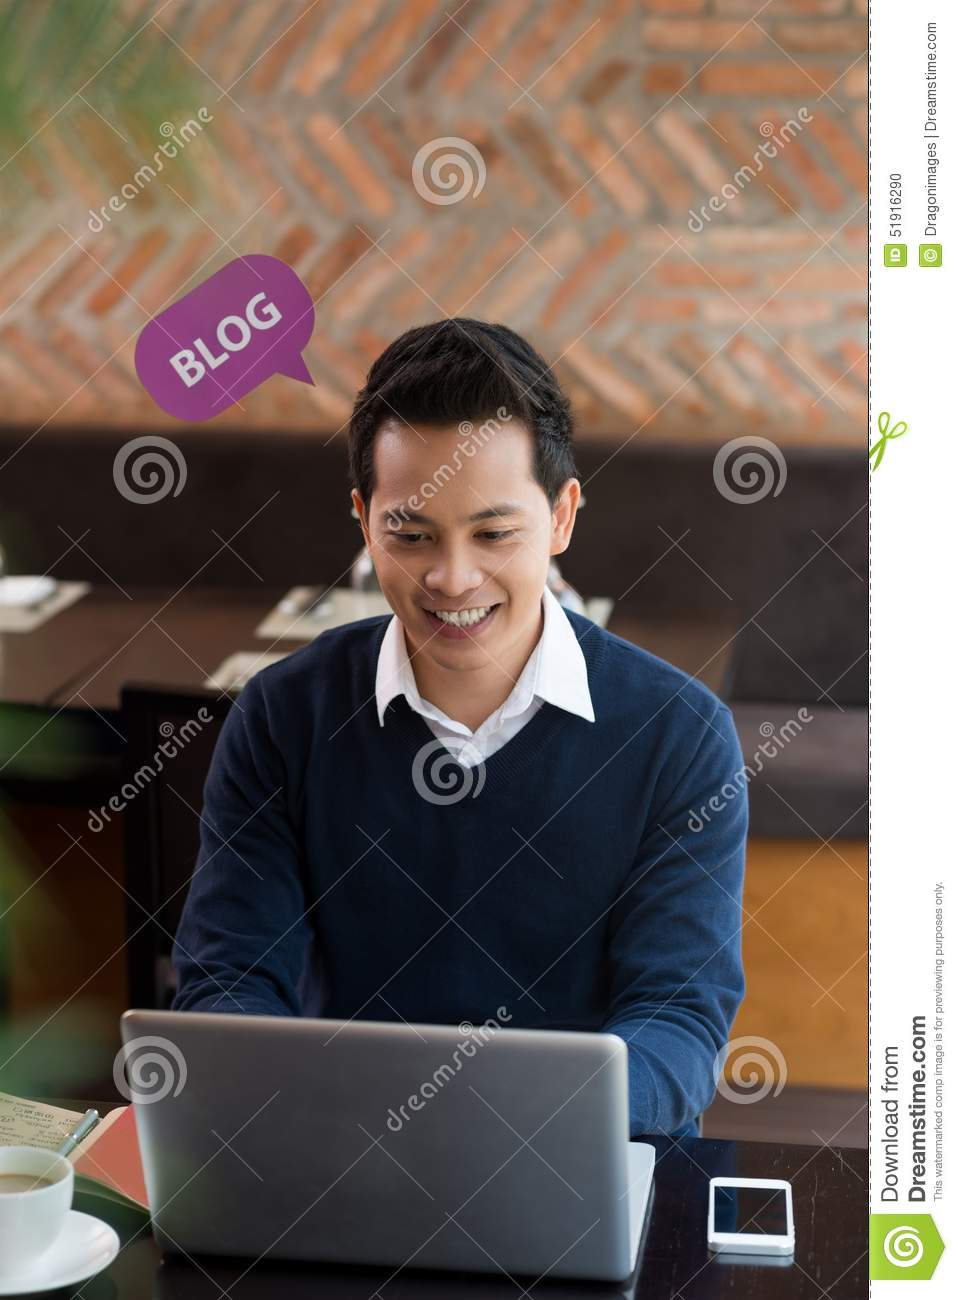 Download Blogging via laptop stock photo. Image of businessman - 51916290